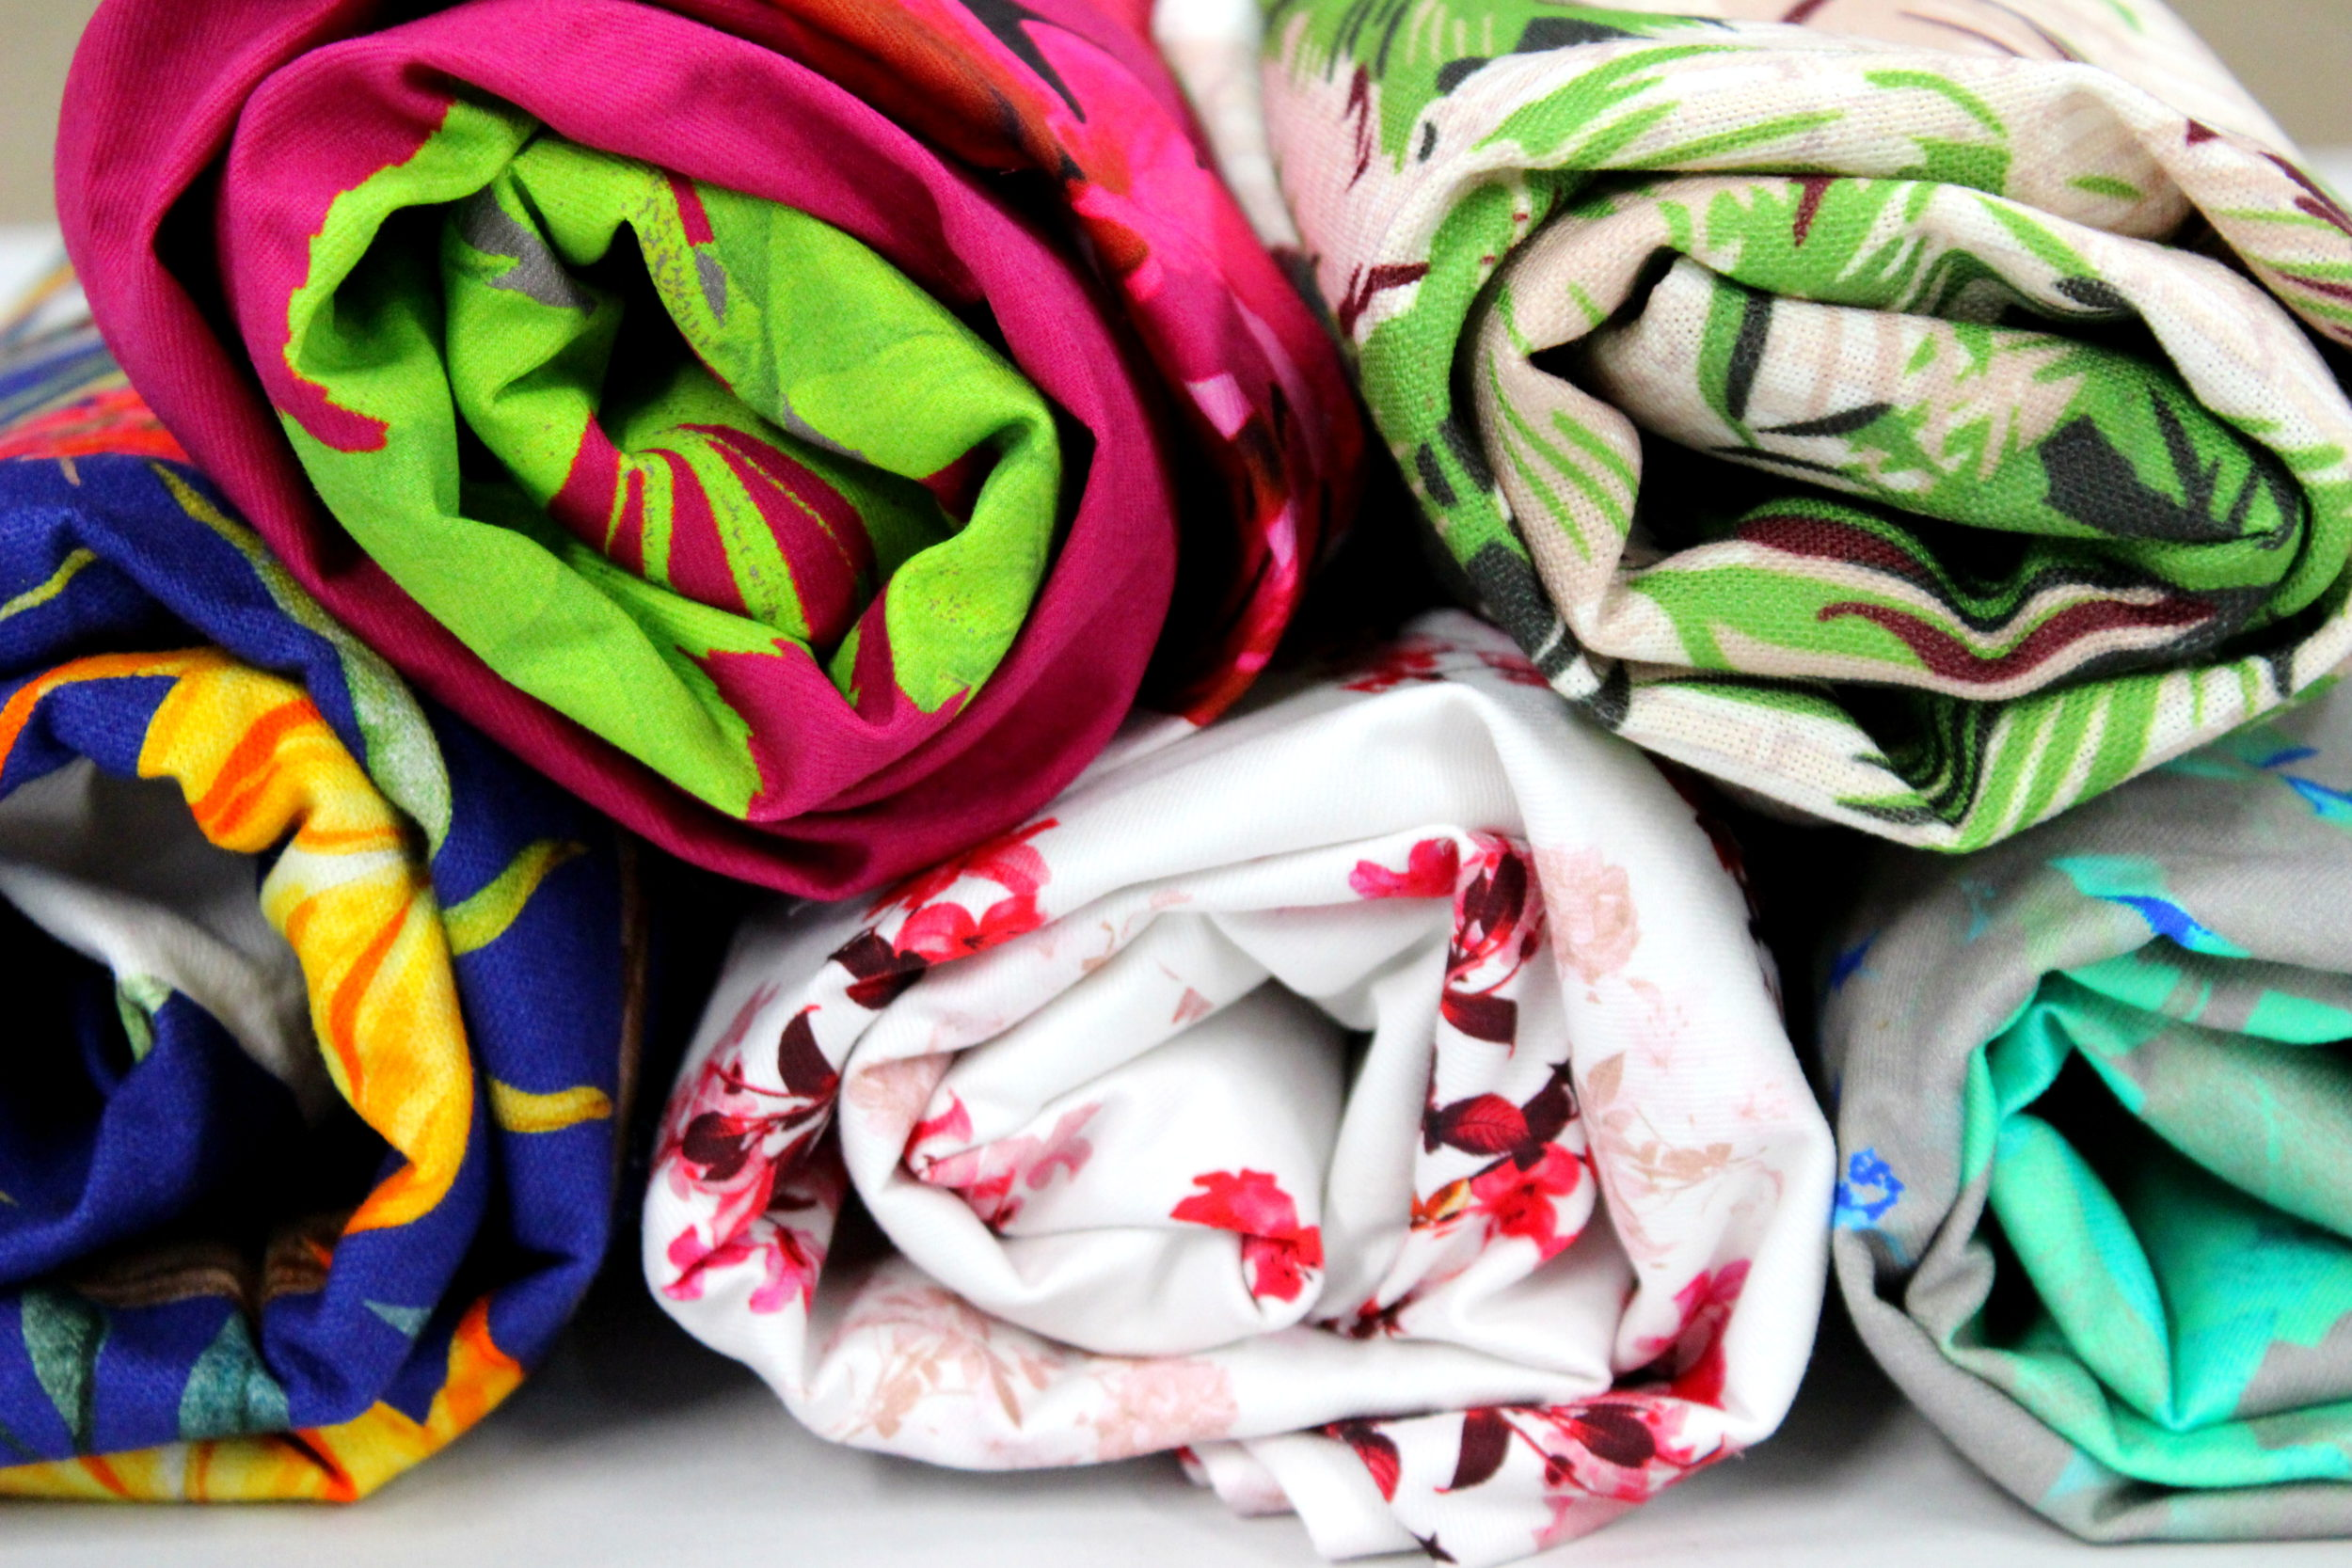 Digital fabric printing on most types of fabric